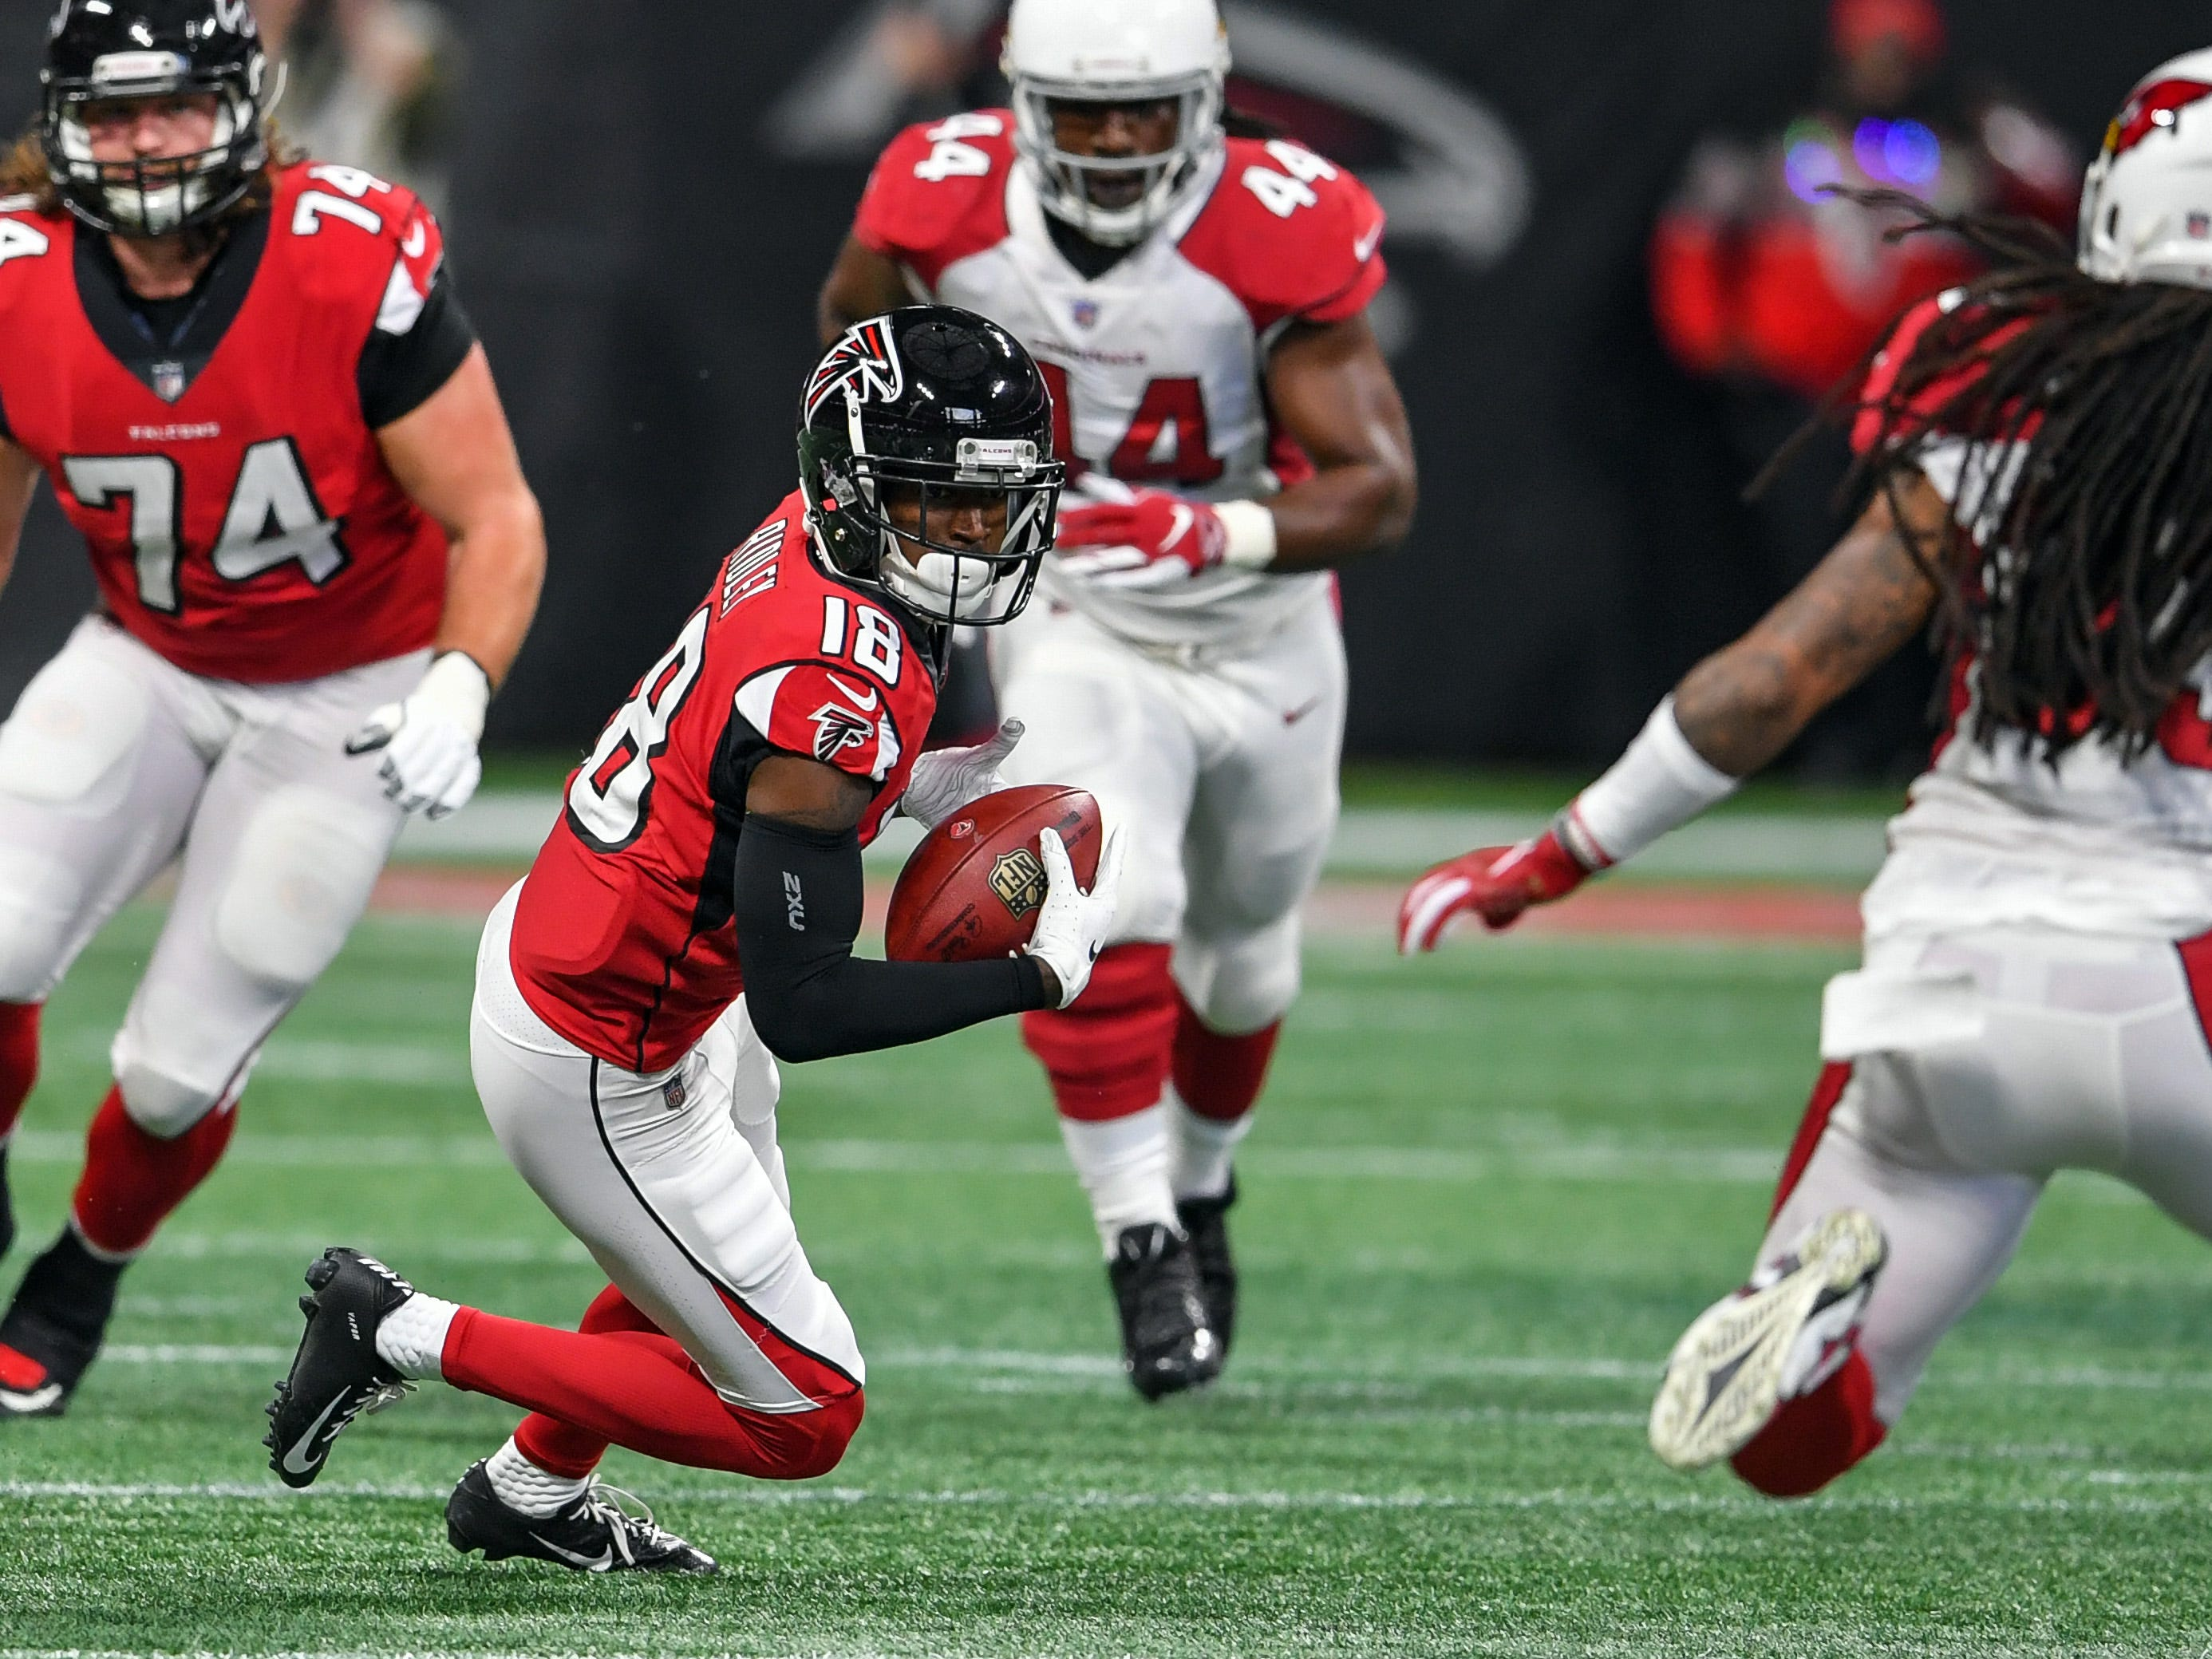 Dec 16, 2018; Atlanta, GA, USA; Atlanta Falcons wide receiver Calvin Ridley (18) runs after a catch against the Arizona Cardinals during the first quarter at Mercedes-Benz Stadium.